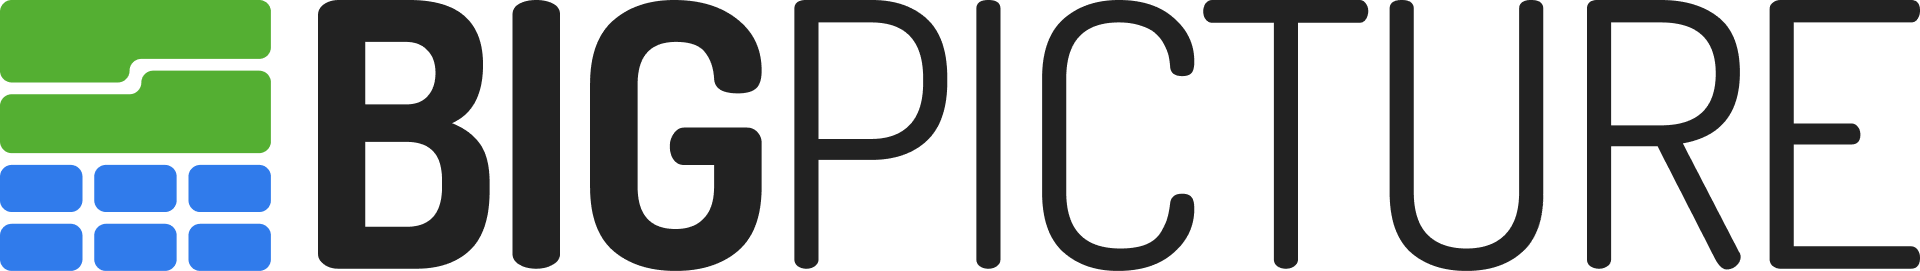 BigPicture is a versatile Portfolio, Product, and Project Management application for Atlassian Jira, used by managers in over 130 countries worldwide. It ensures unprecedented clarity of information, visualization of even the most complex initiatives, and secures perfect strategy-to-execution alignment at all levels.